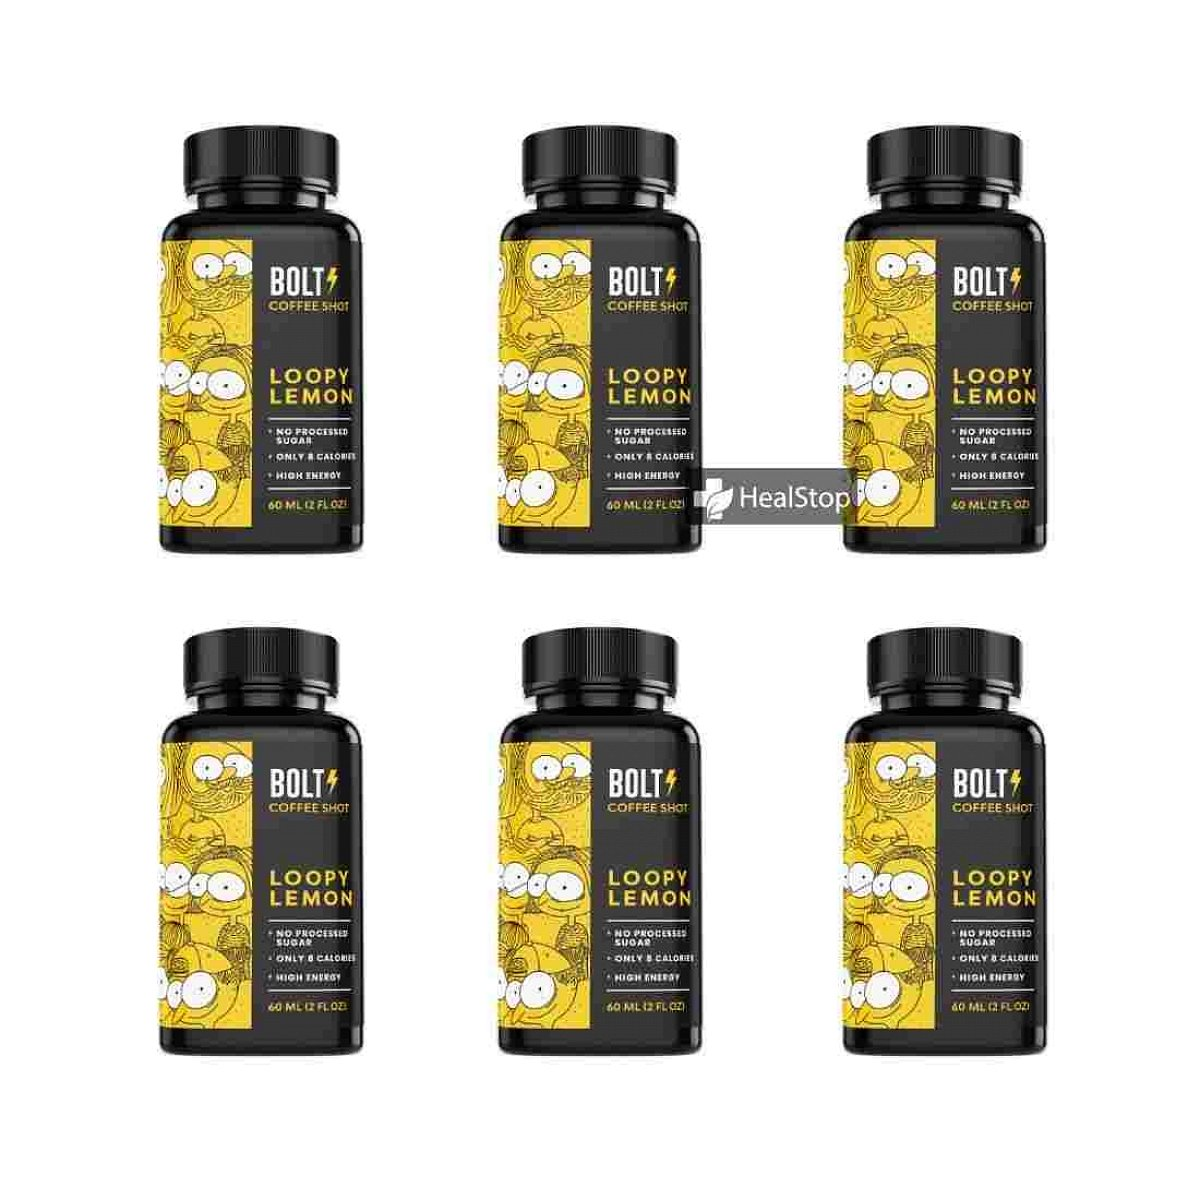 Bolt Coffee Shot - Loopy Lemon (Pack of 6)